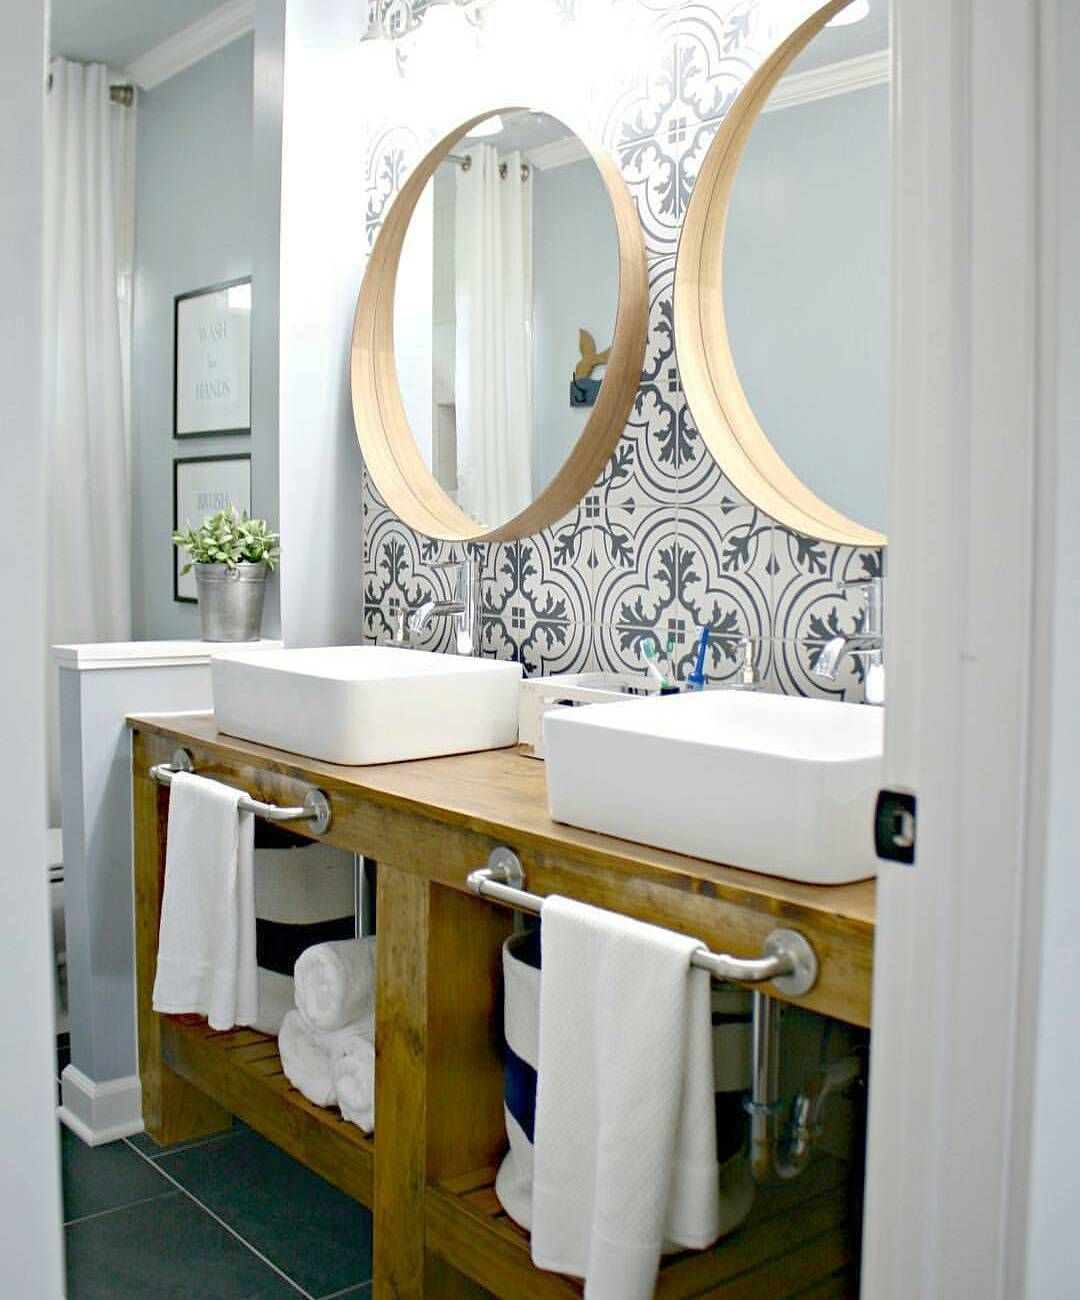 Morning friends! Do you love this bathroom as much as I do? Could ...